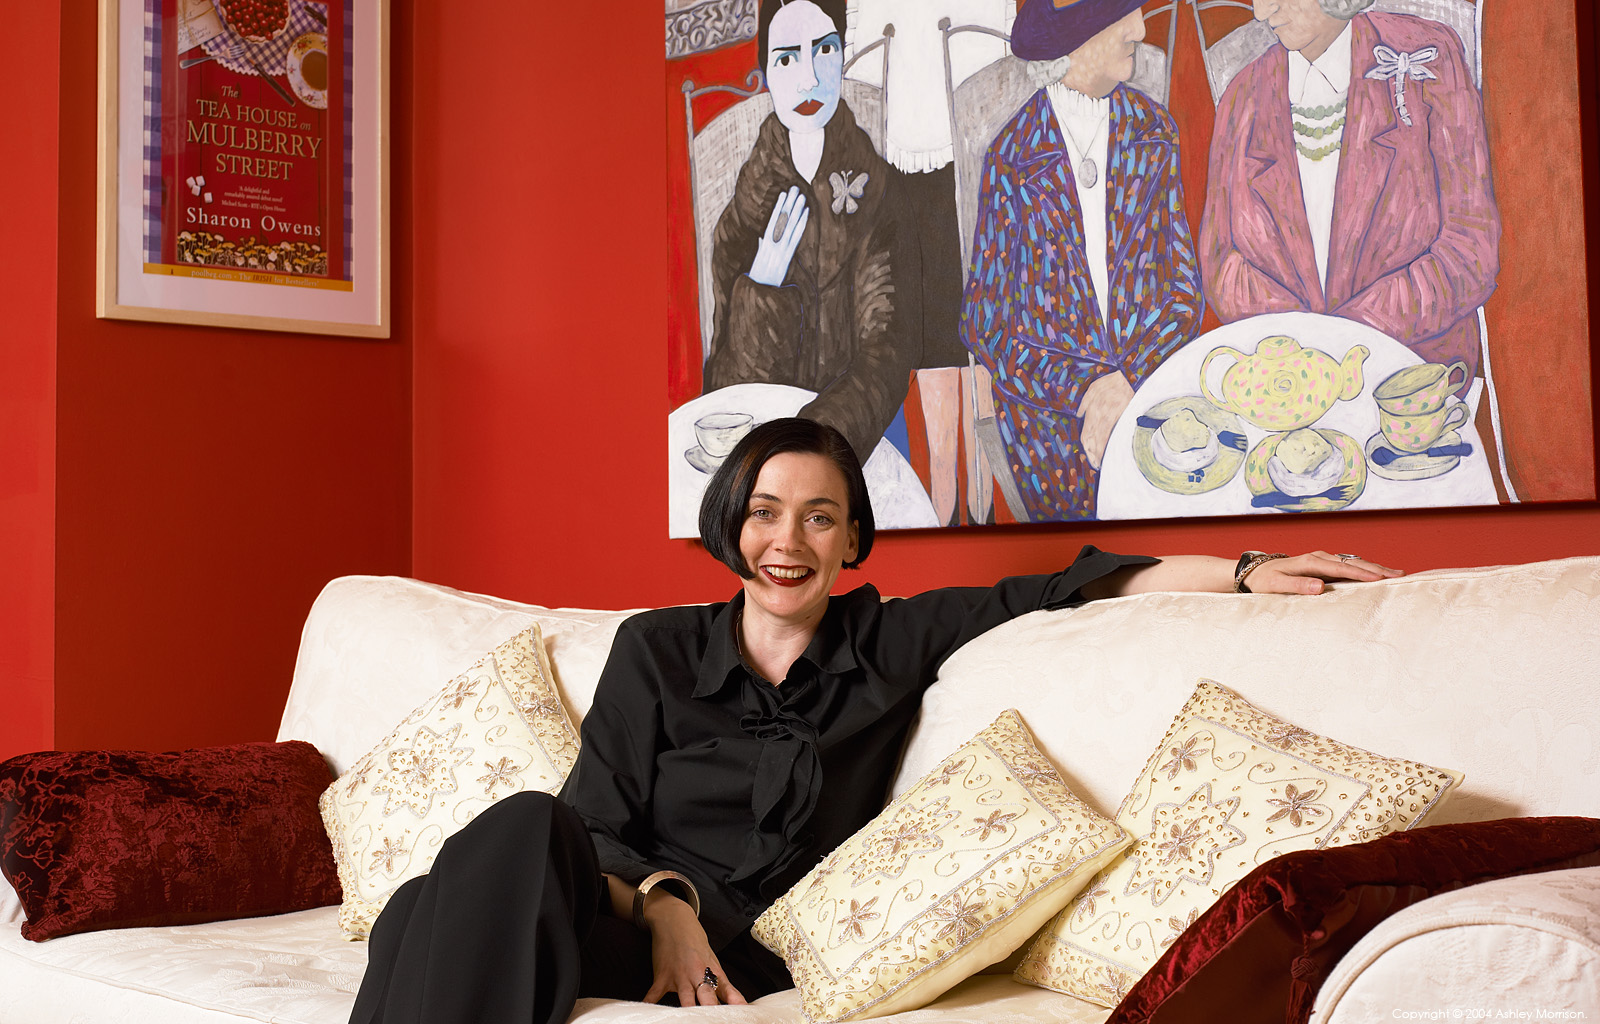 At home with artist & writer Sharon Owens in her modern bungalow in Belfast.